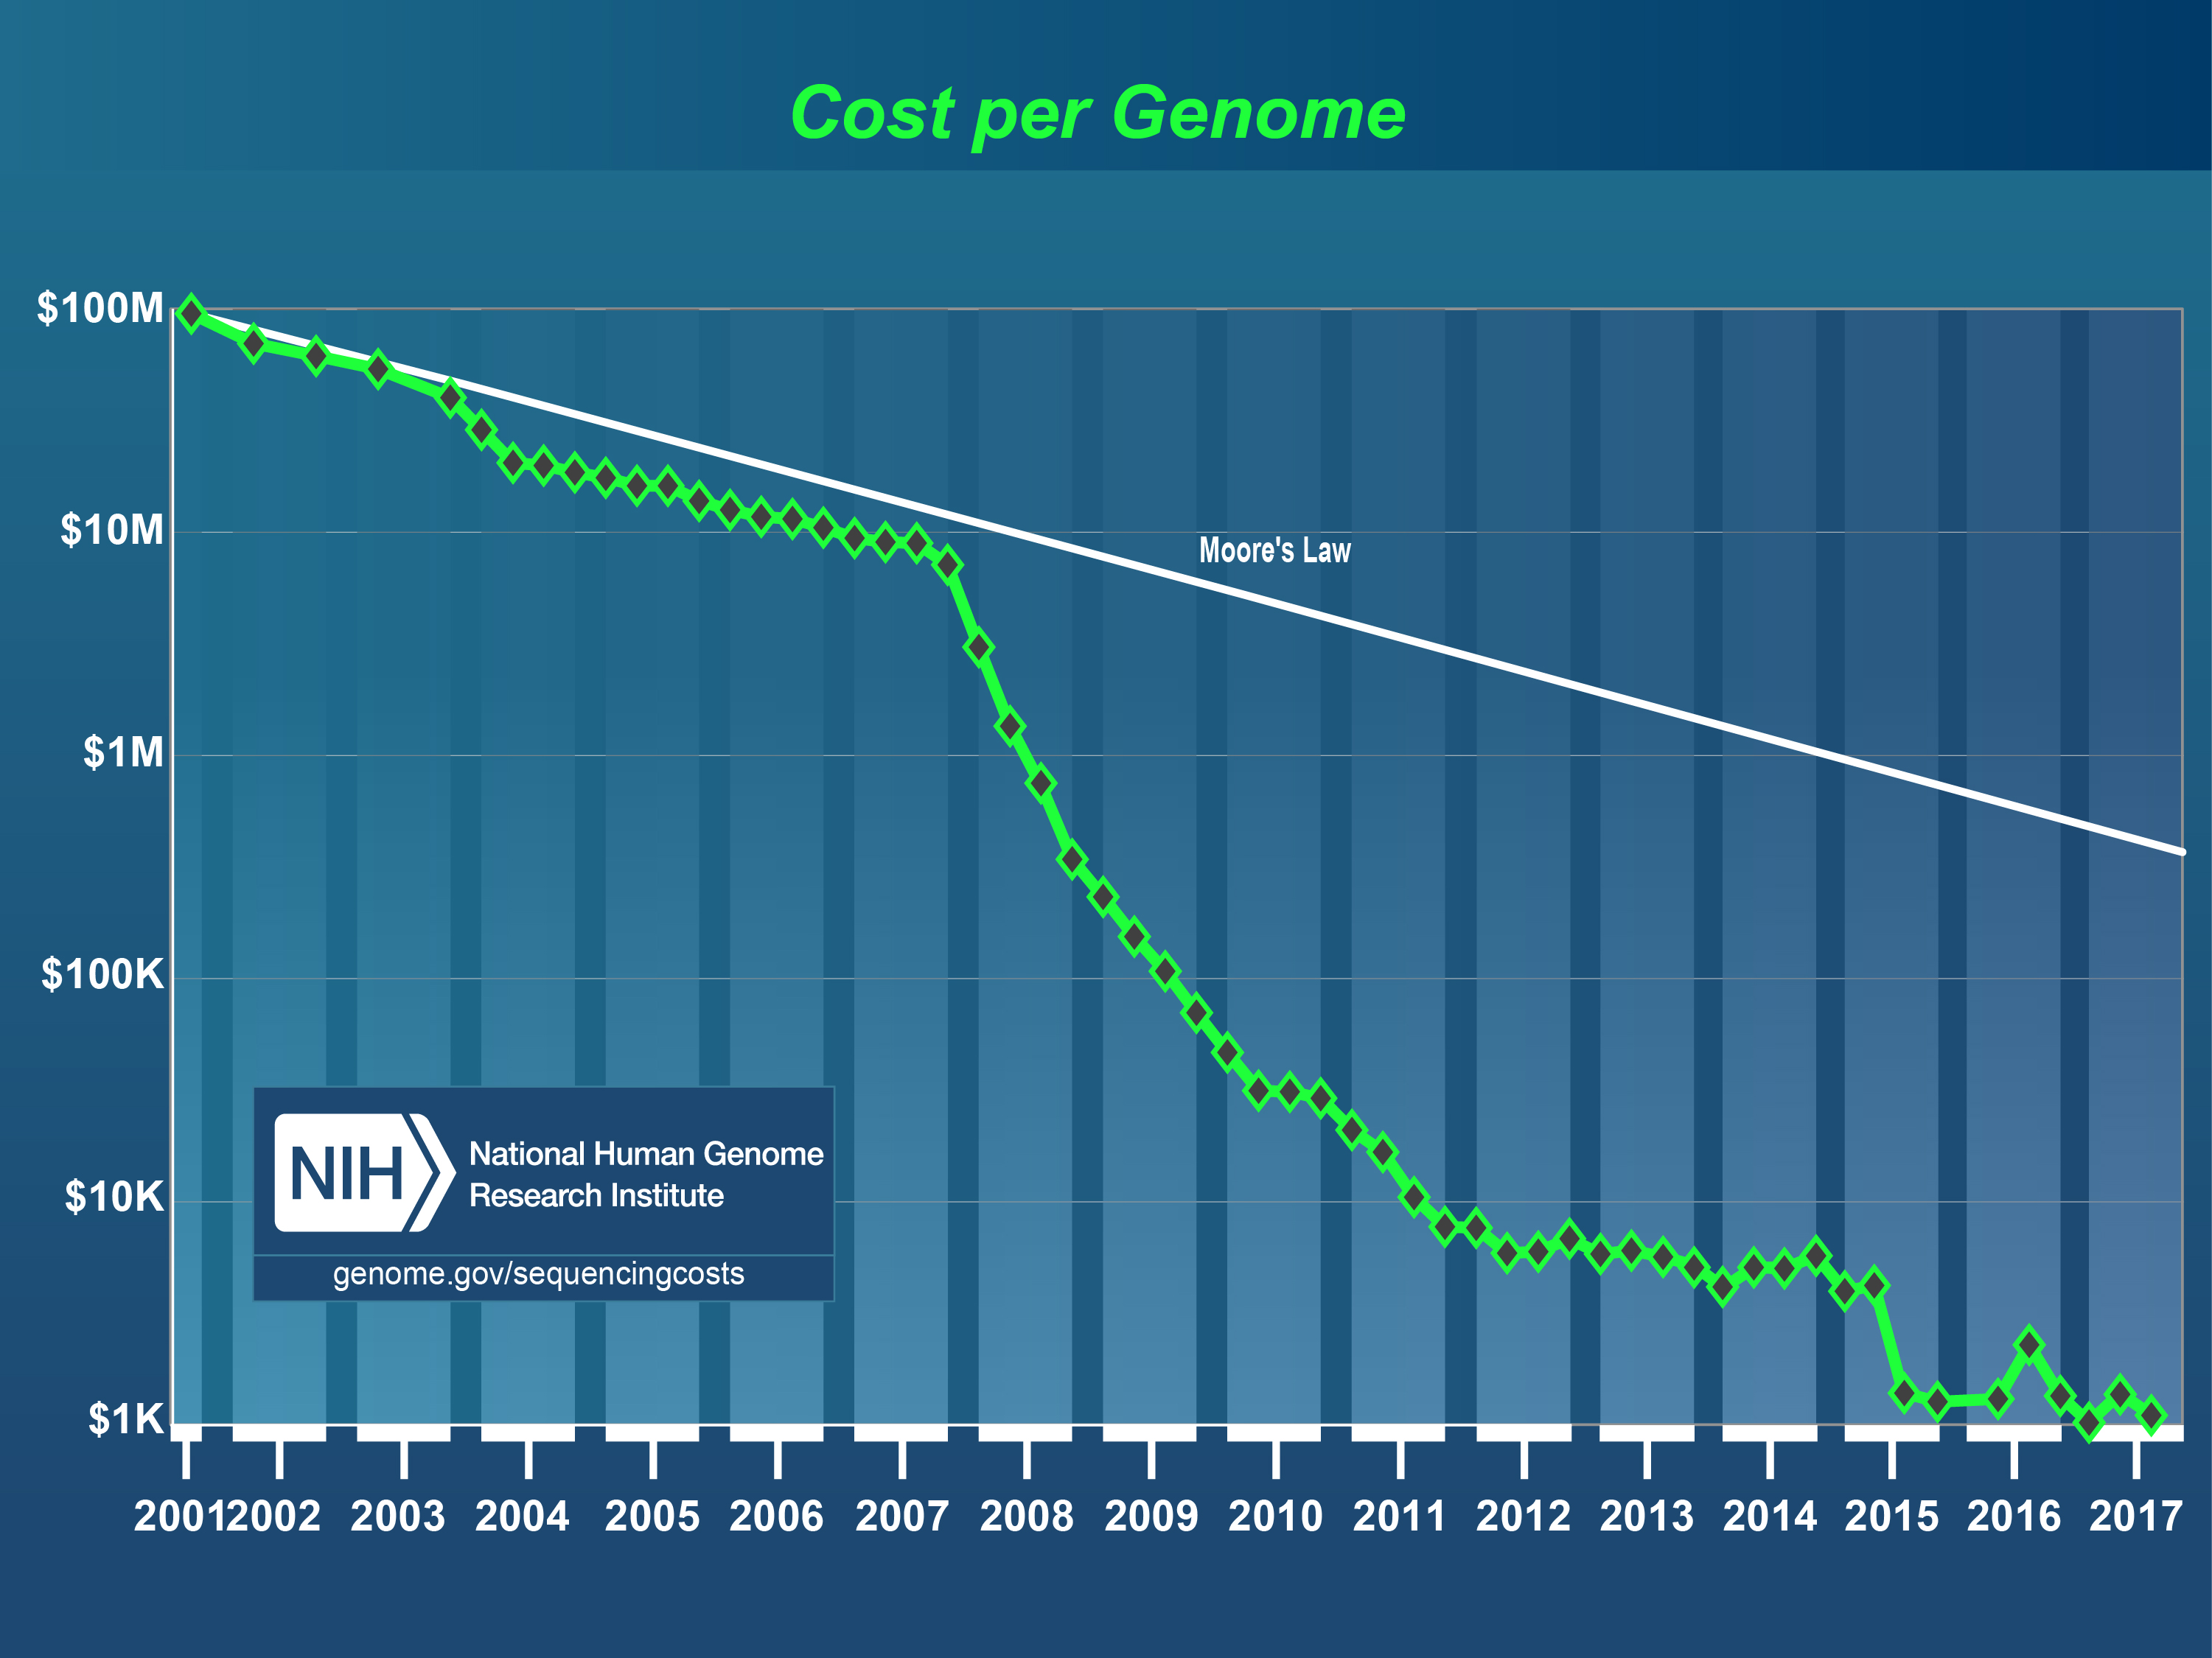 imec tackles the cost per genome